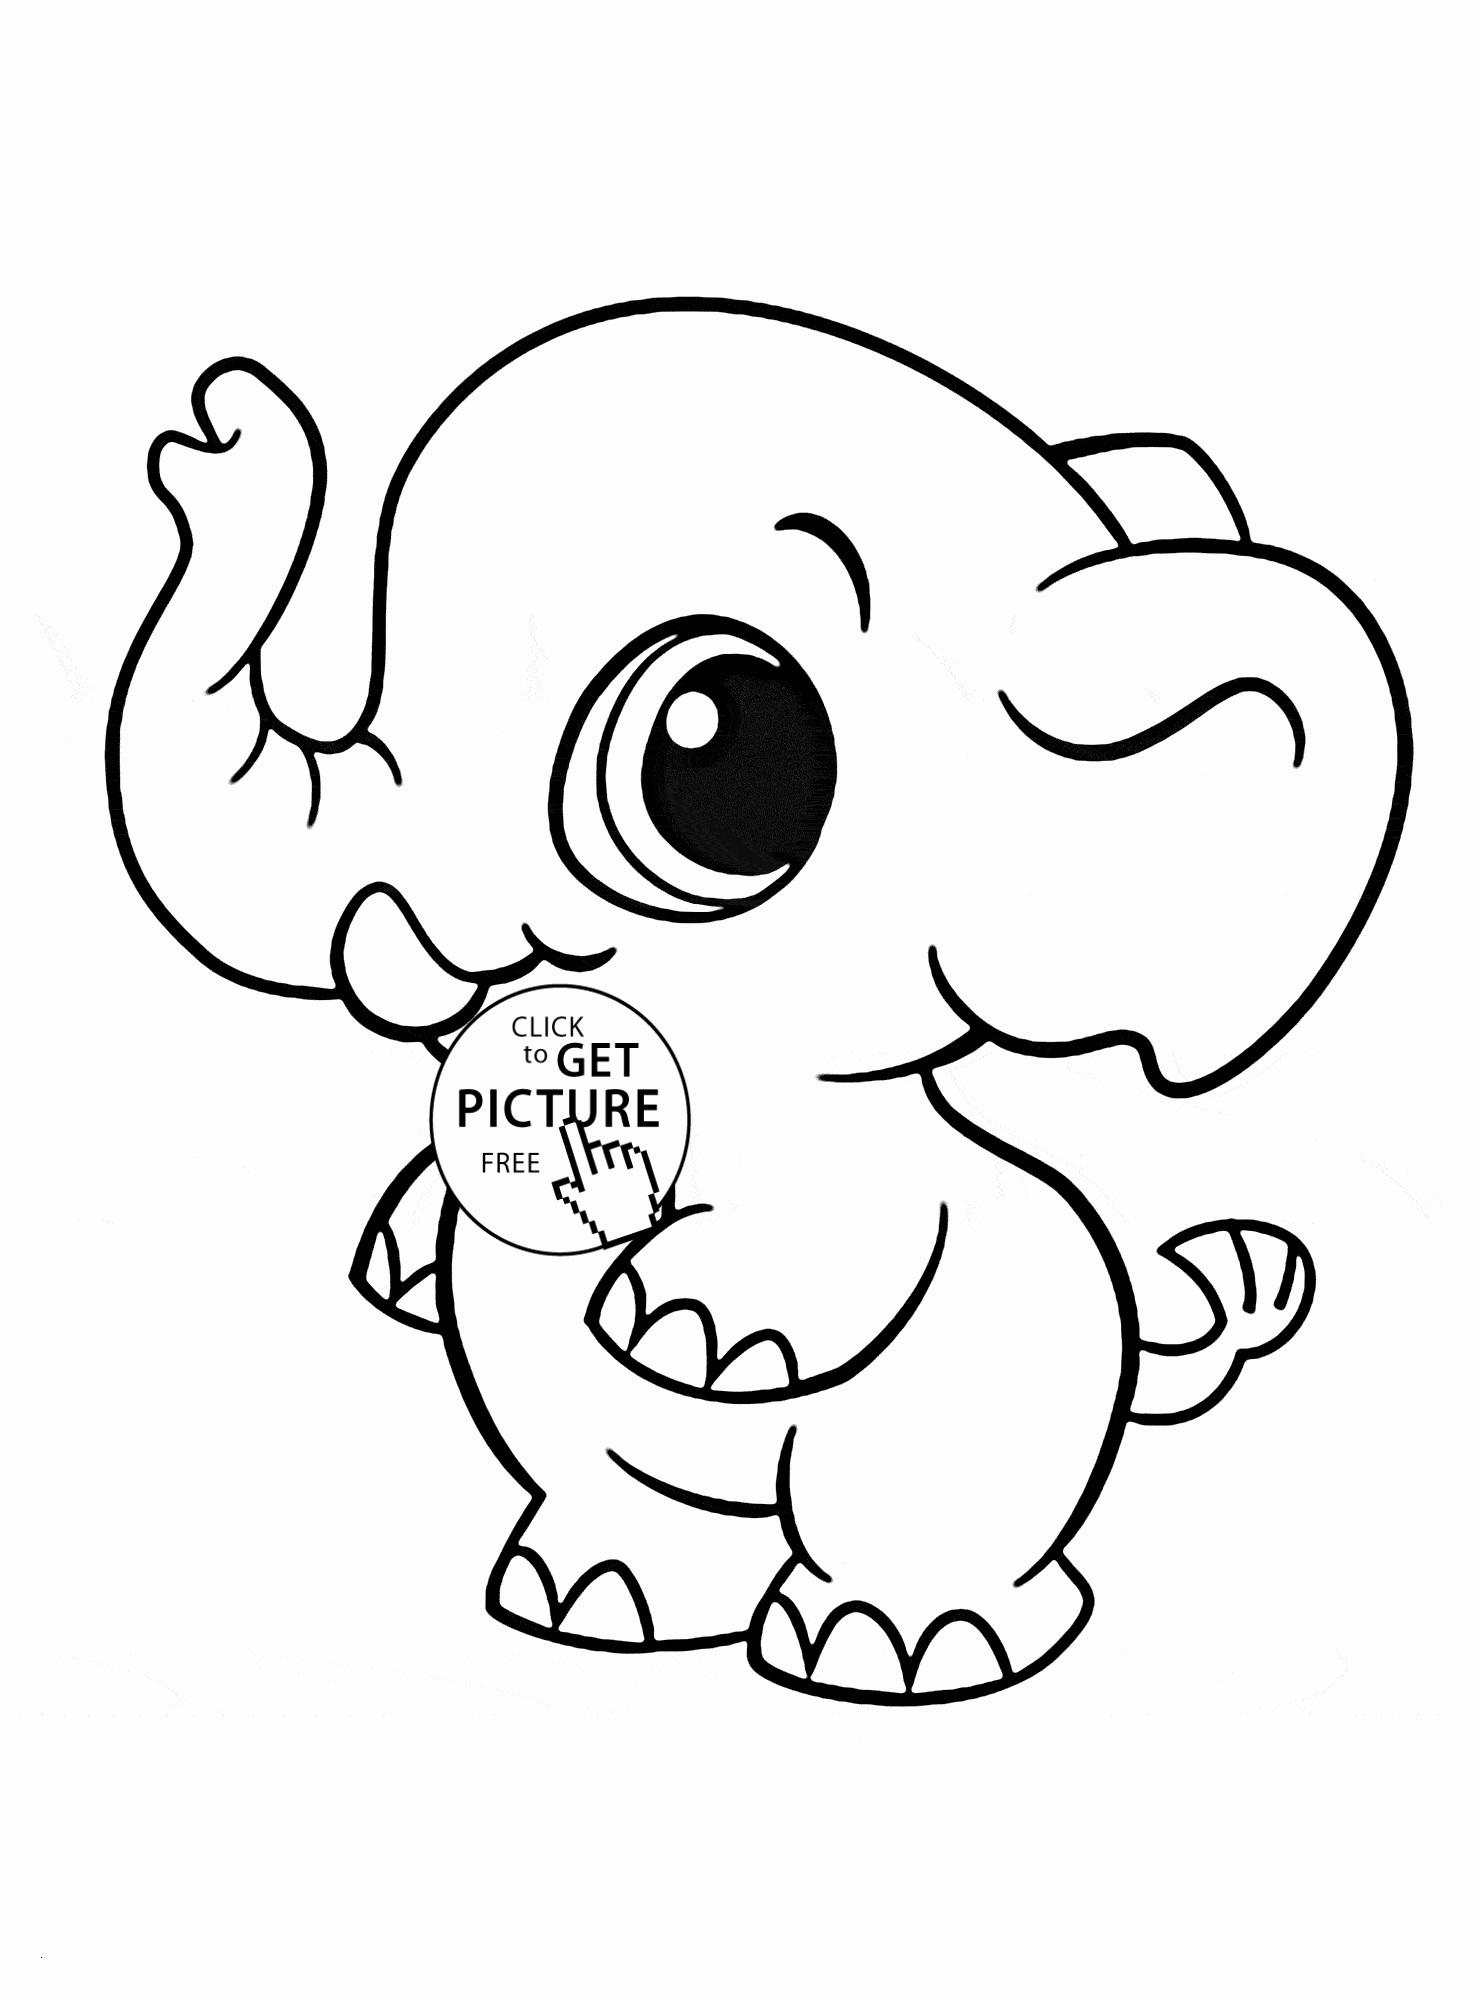 Teddy Bear Coloring Pages  Printable 17a - Free For kids